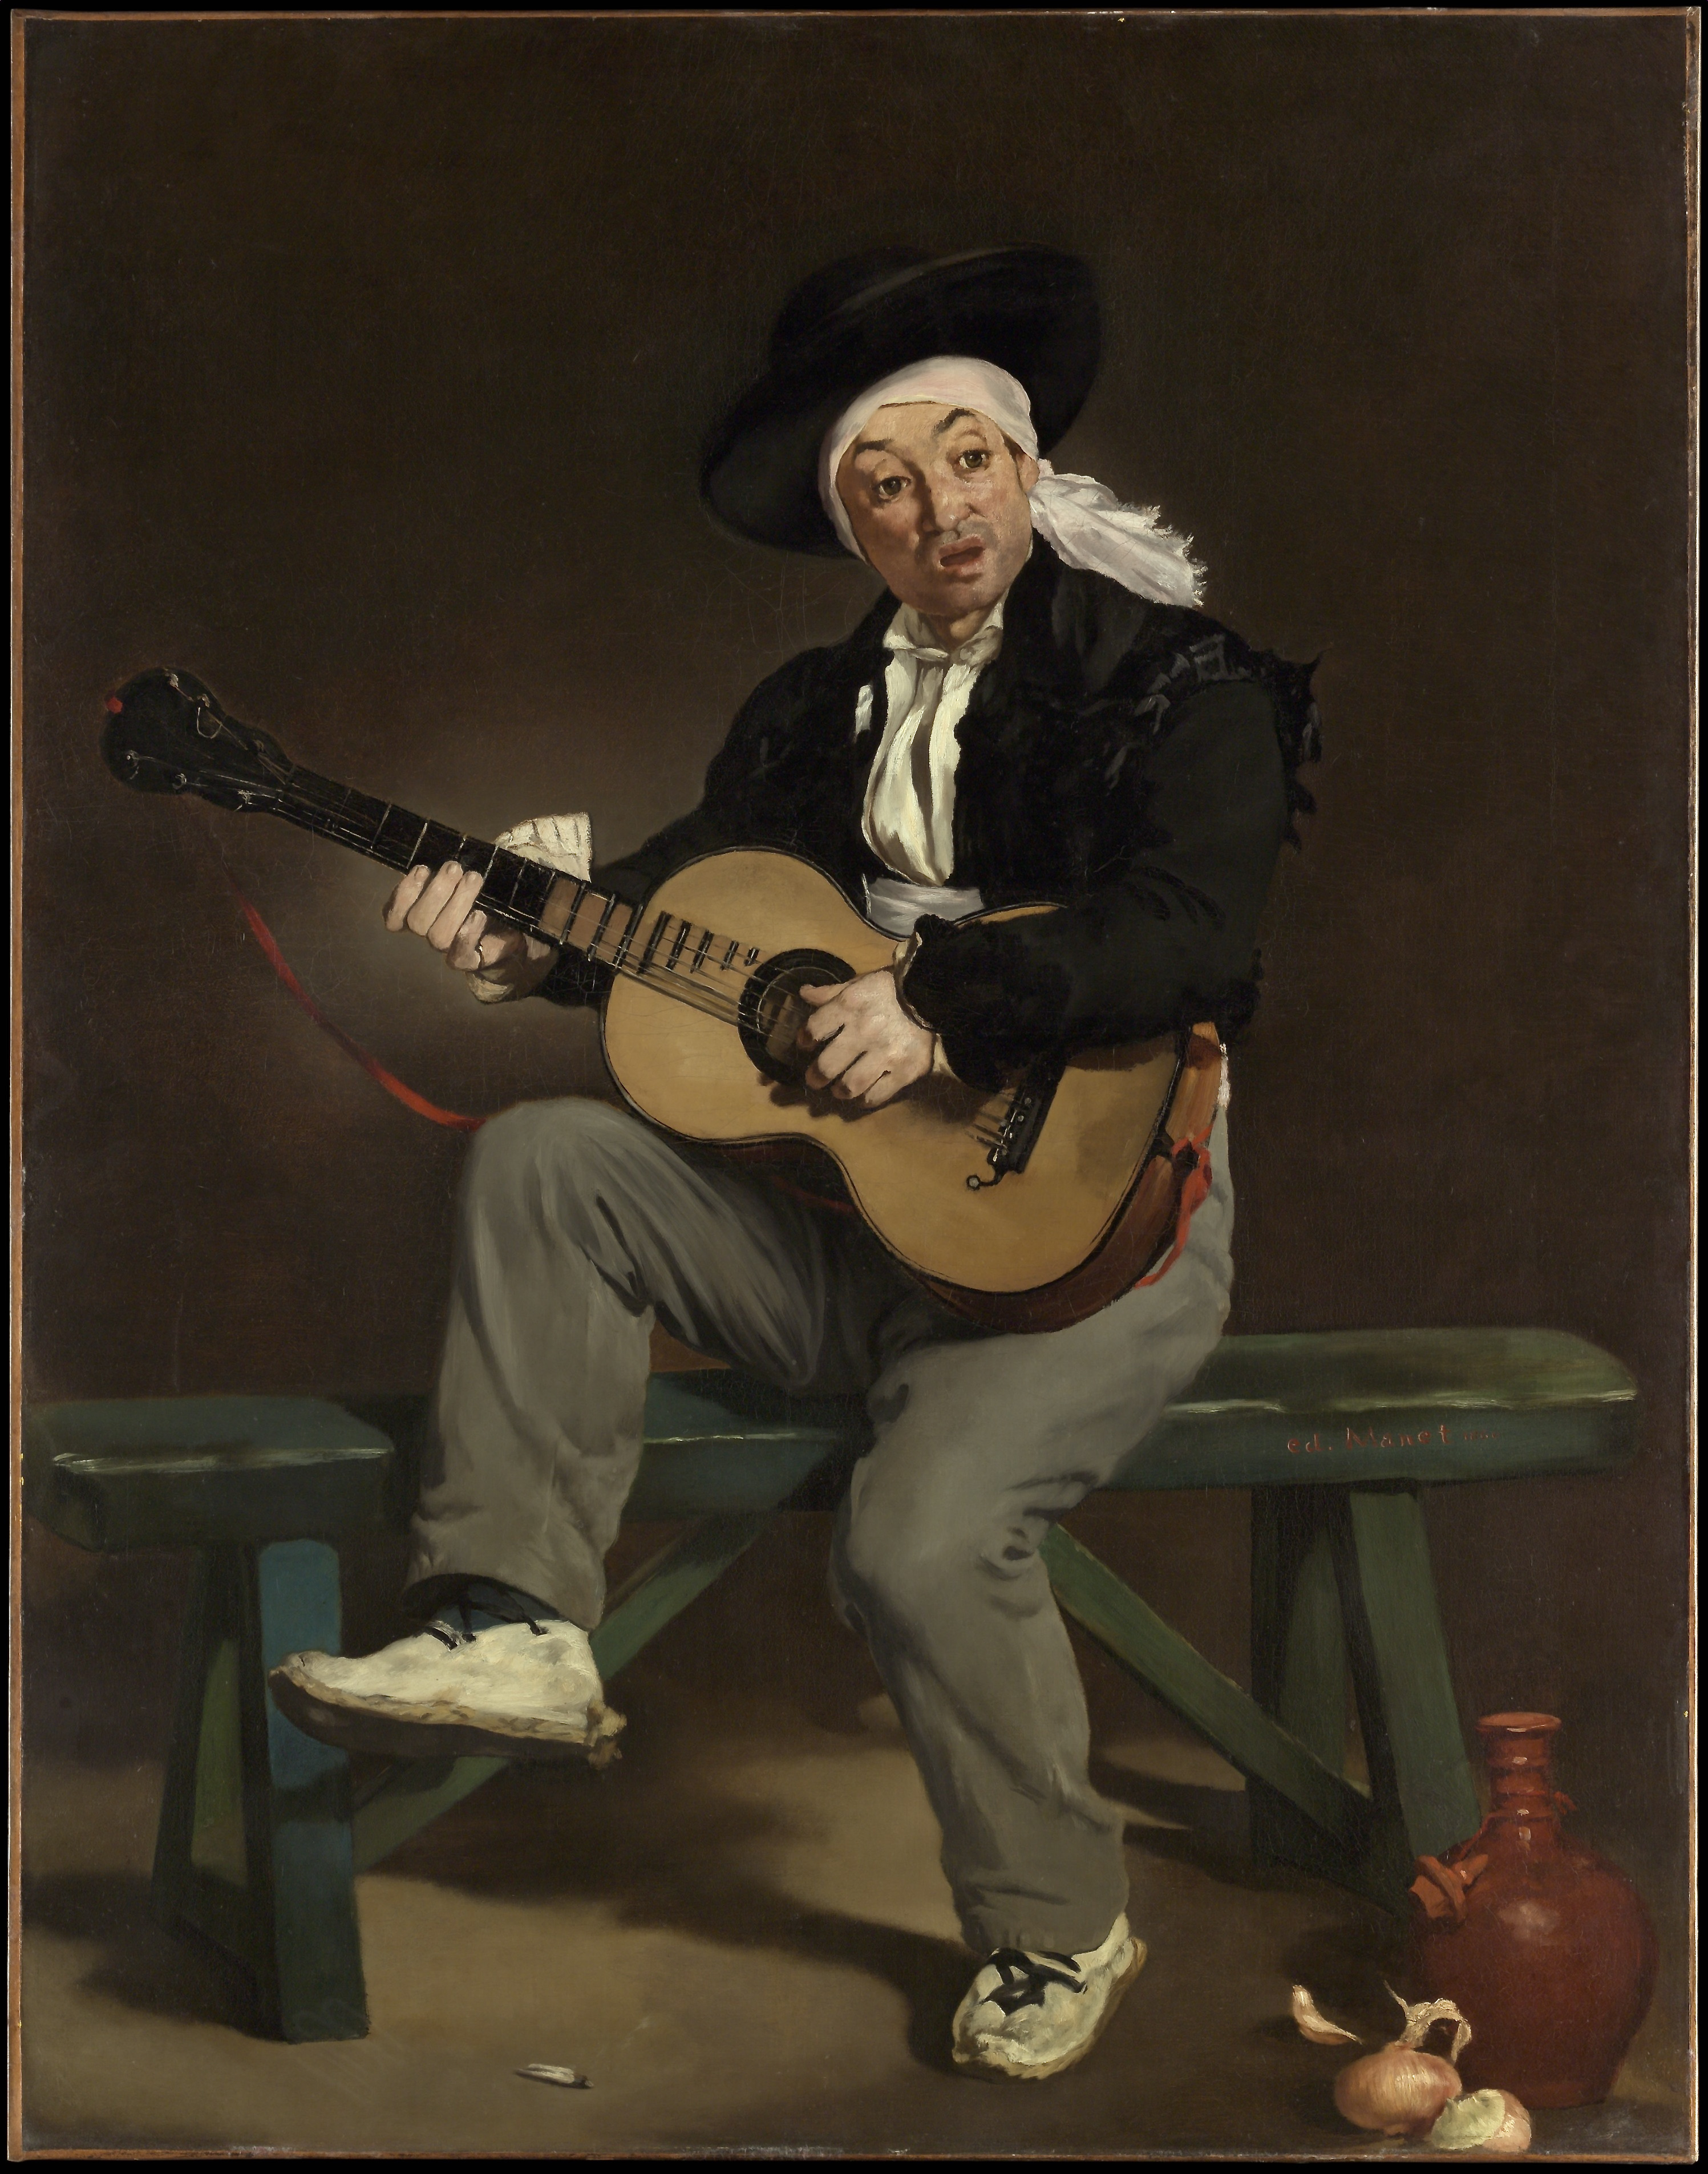 http://www.metmuseum.org/art/collection/search/436944